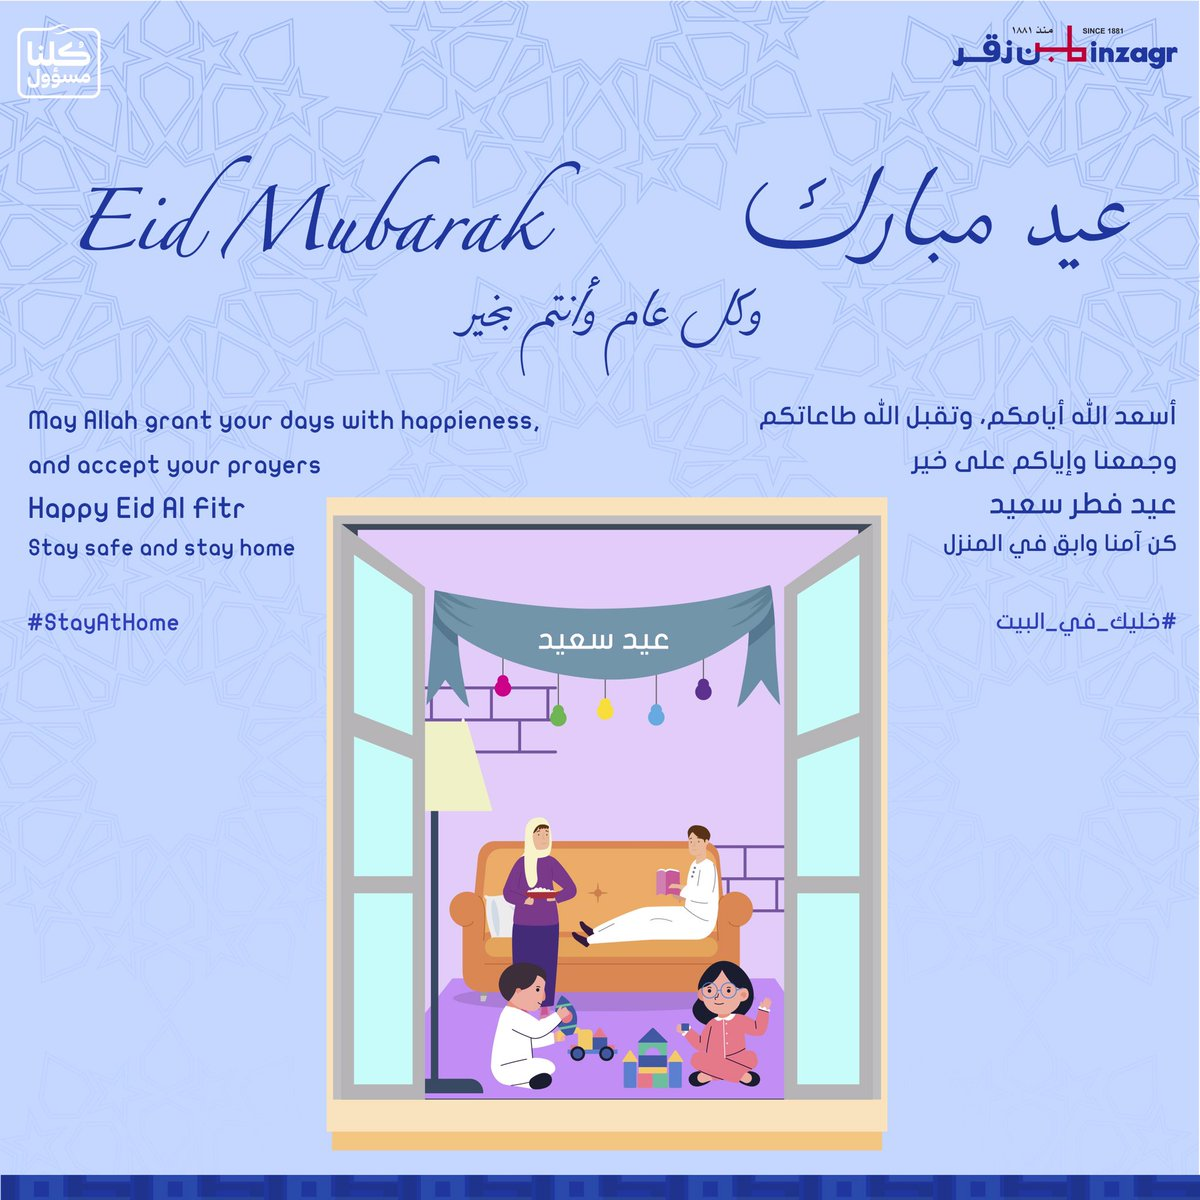 Happy Eid Al Fitr | عيد فطر سعيد https://t.co/beAqfMrHQW